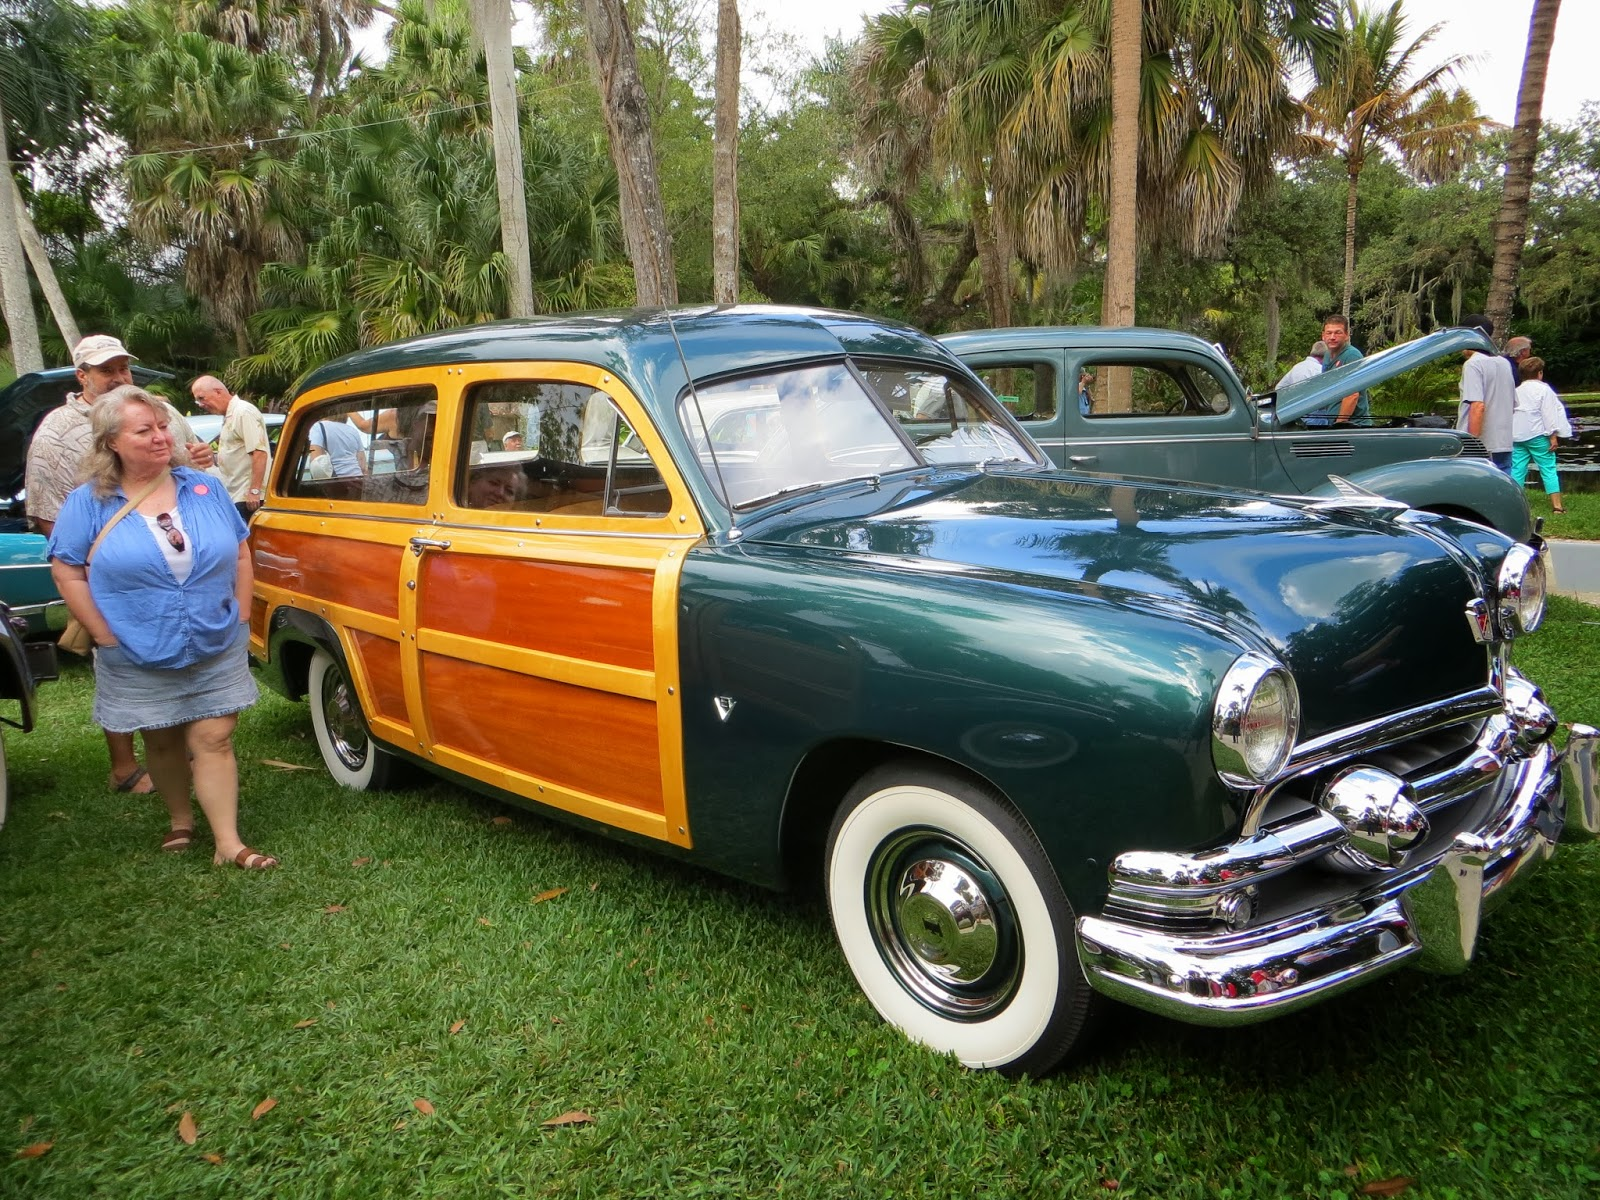 Toy Hauling The USA McKey Botanical Garden Vero Beach FL - Vero beach car show